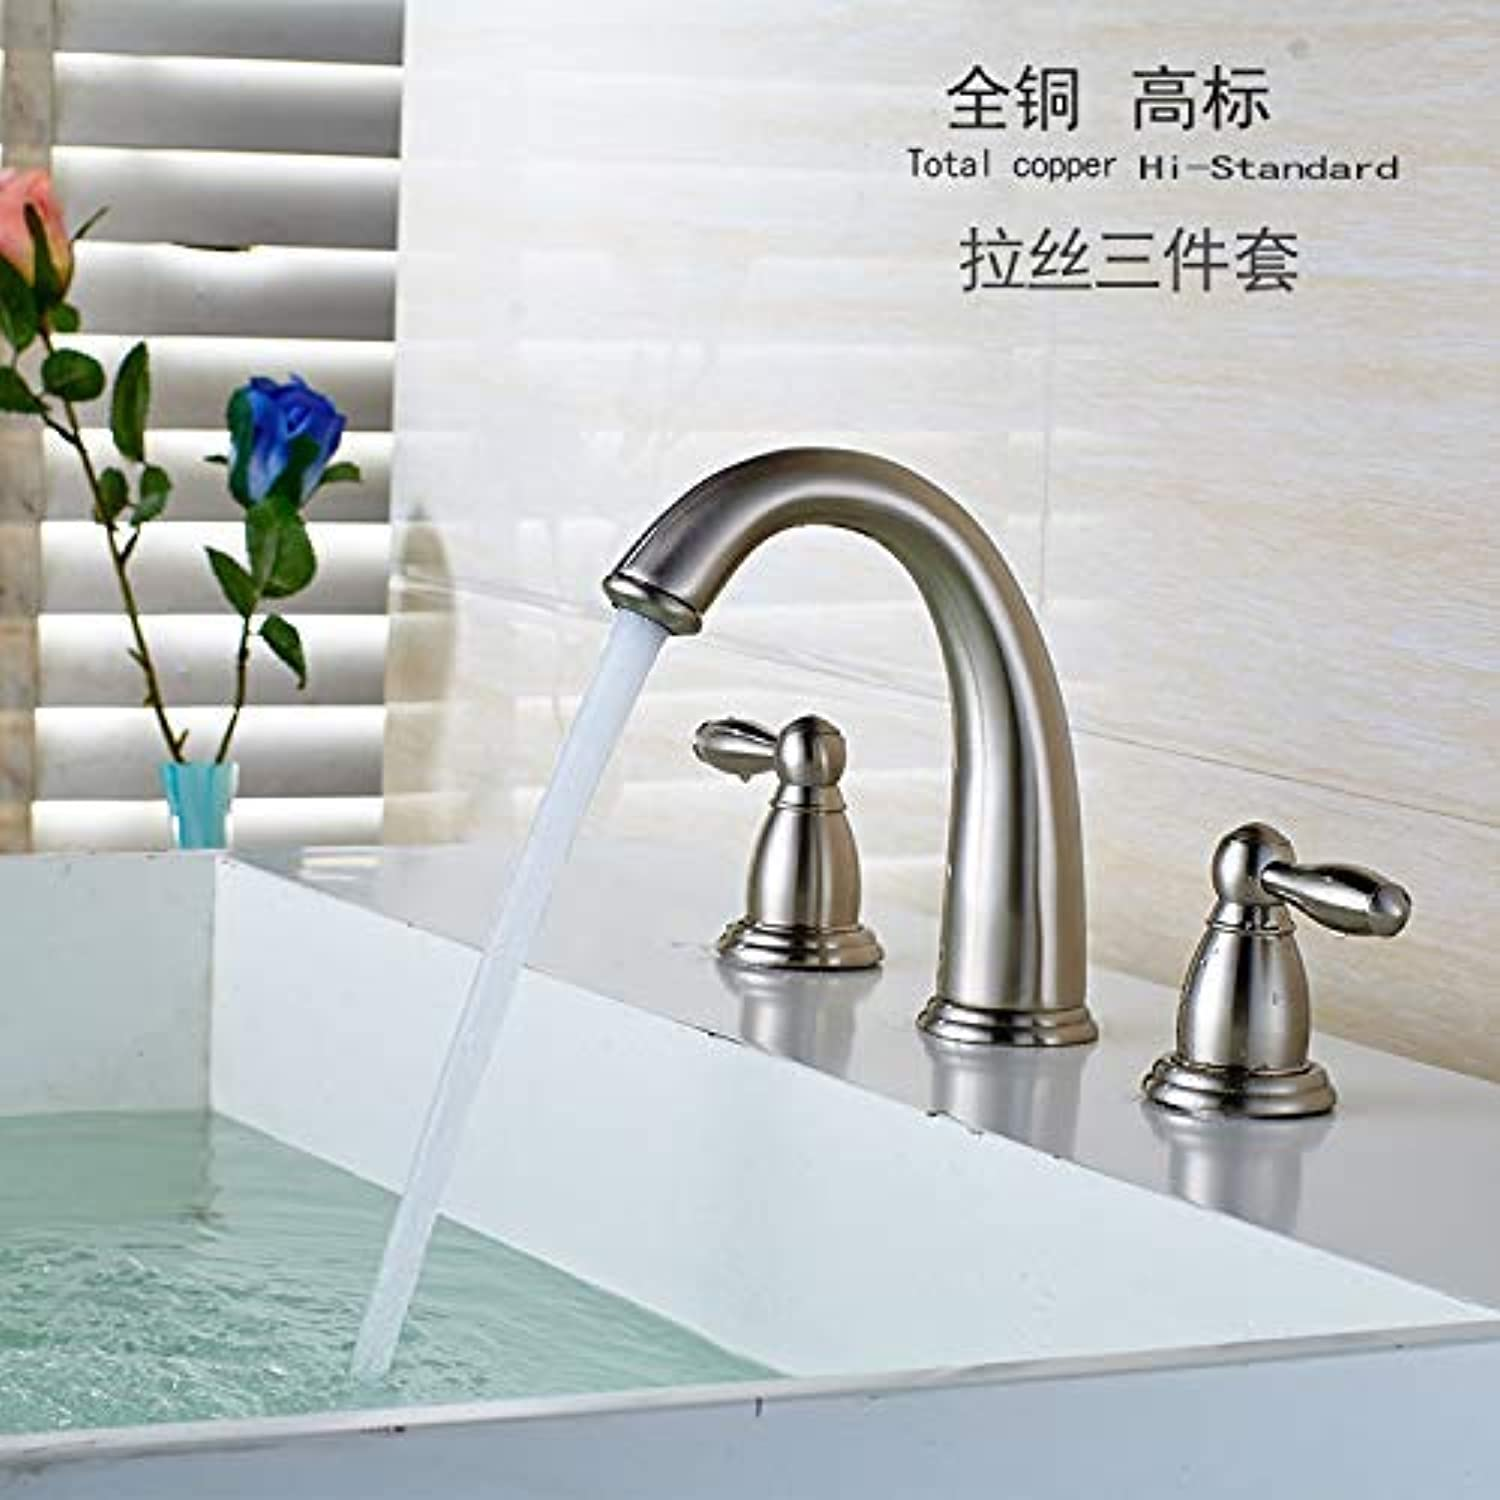 Oudan The Whole Copper Hot and Cold Taps Manufacturers Mixer Bathroom Cabinet Washbasin Mixing Valve Bath Fine Three Holes Drawing (color   Brushed, Size   -)